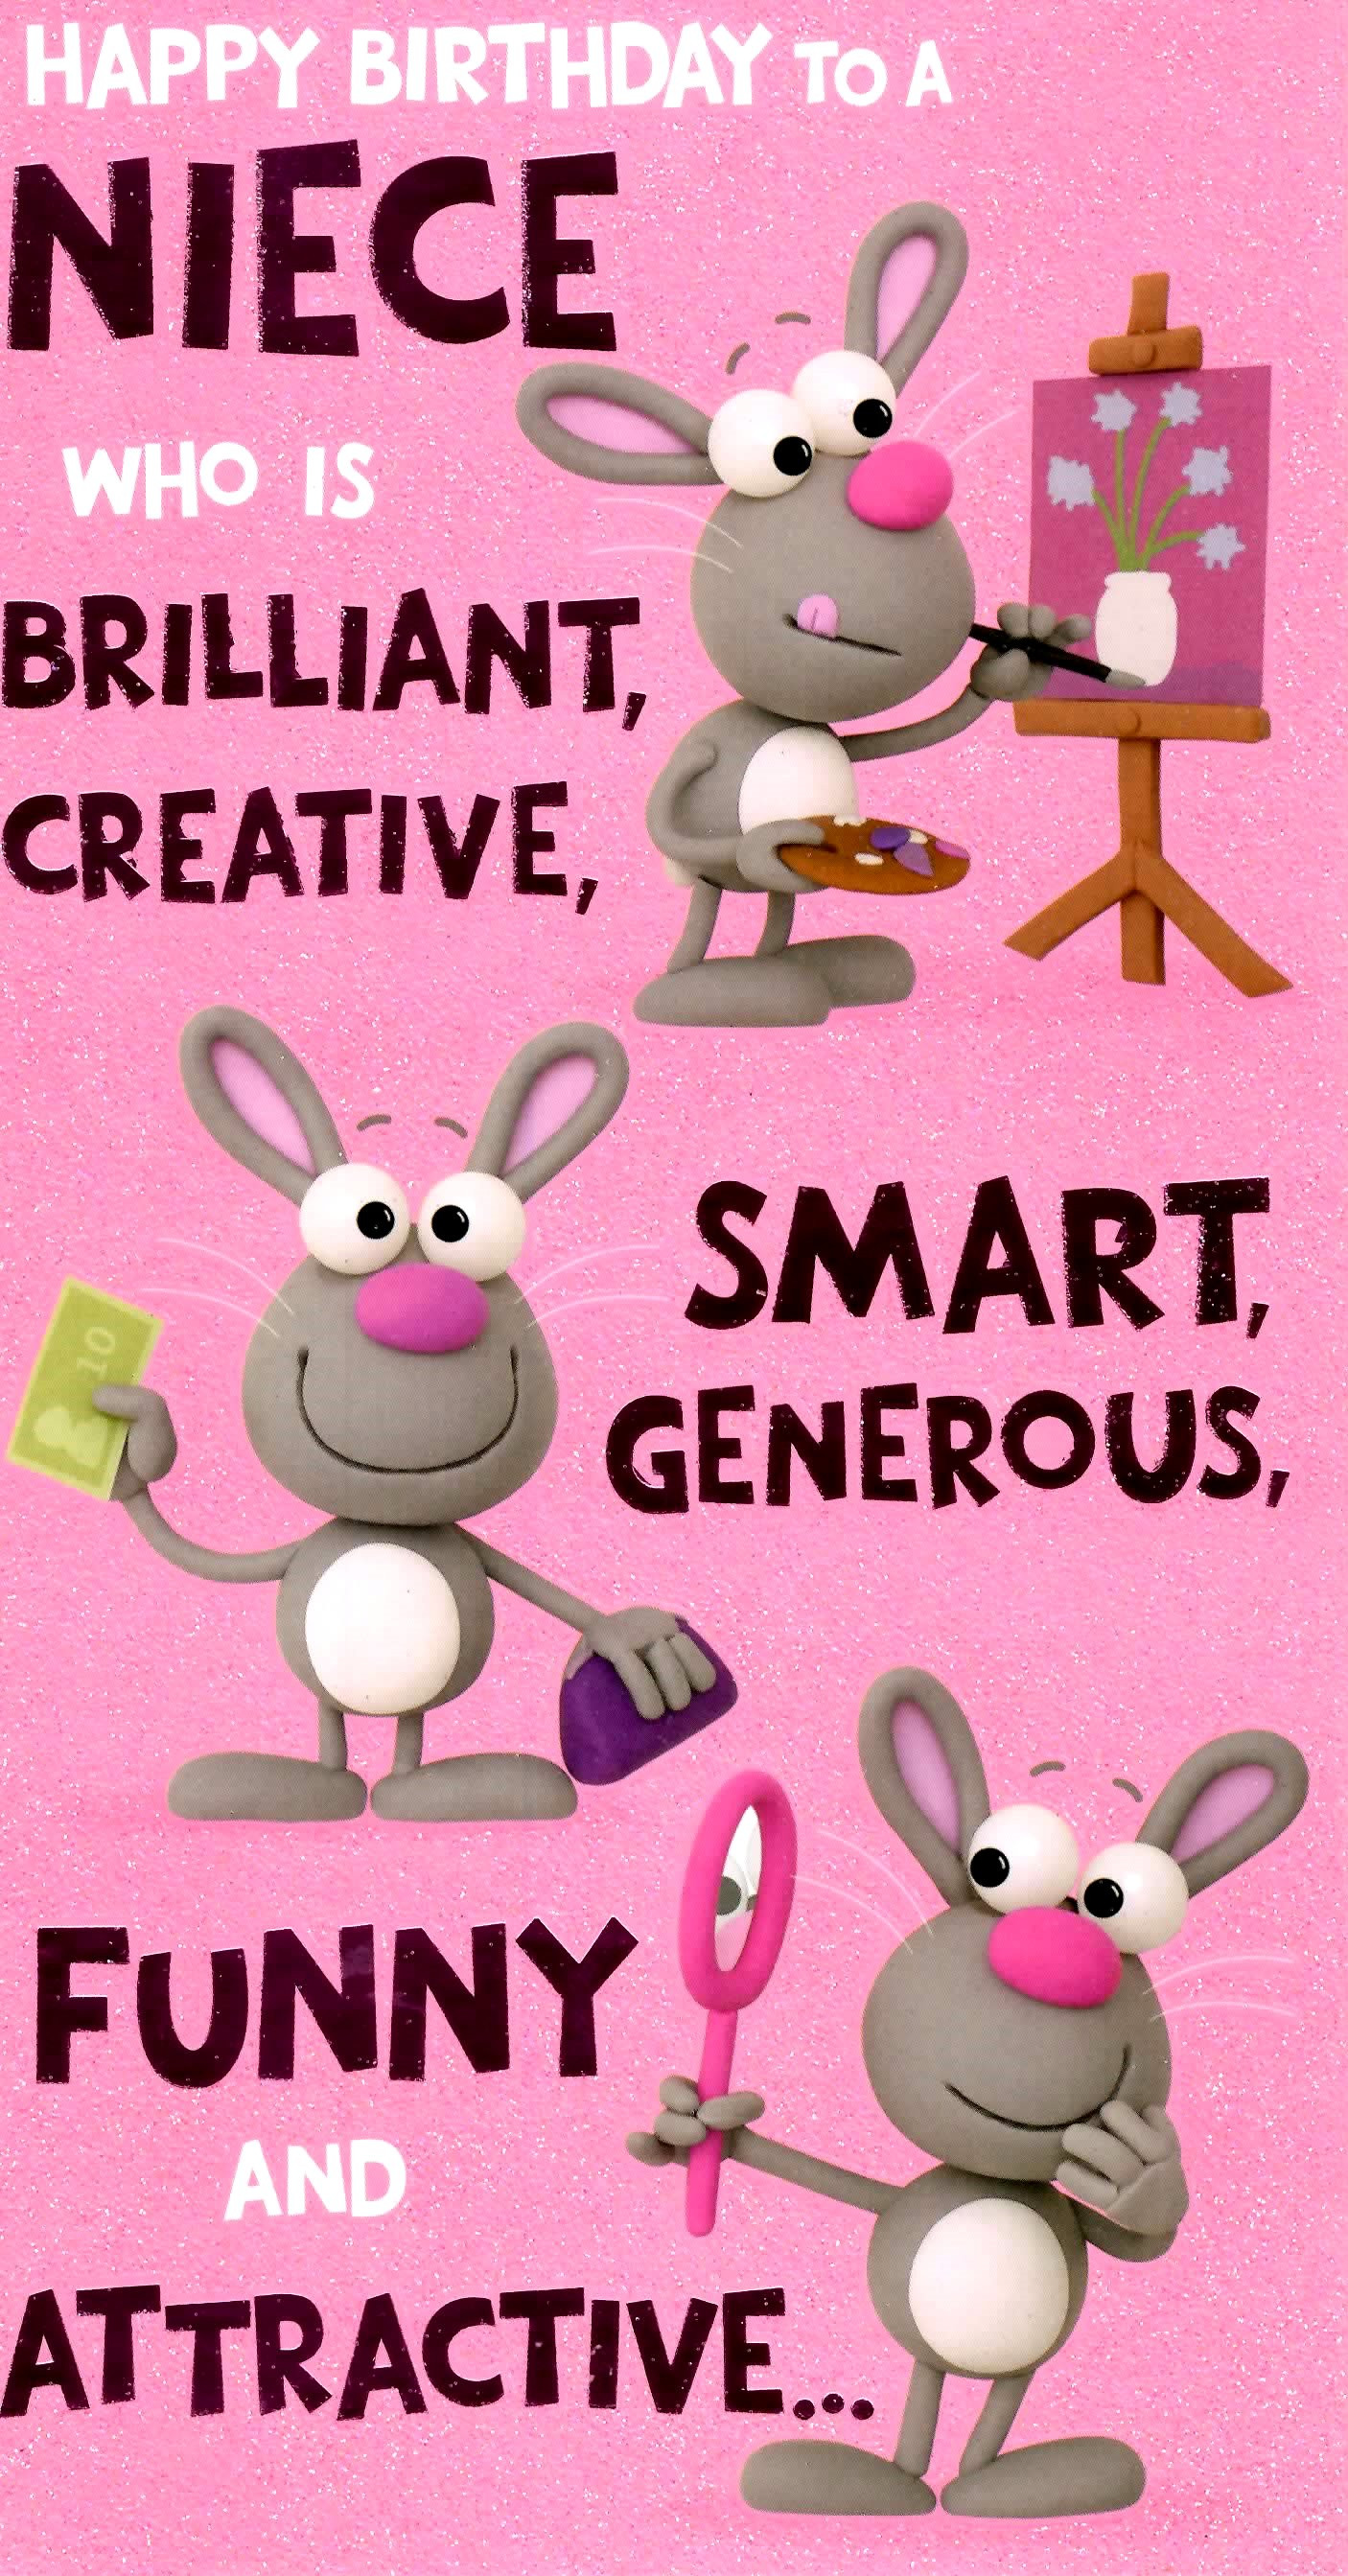 Best ideas about Birthday Wishes For Nice . Save or Pin Cute Funny Niece Birthday Greeting Card Now.